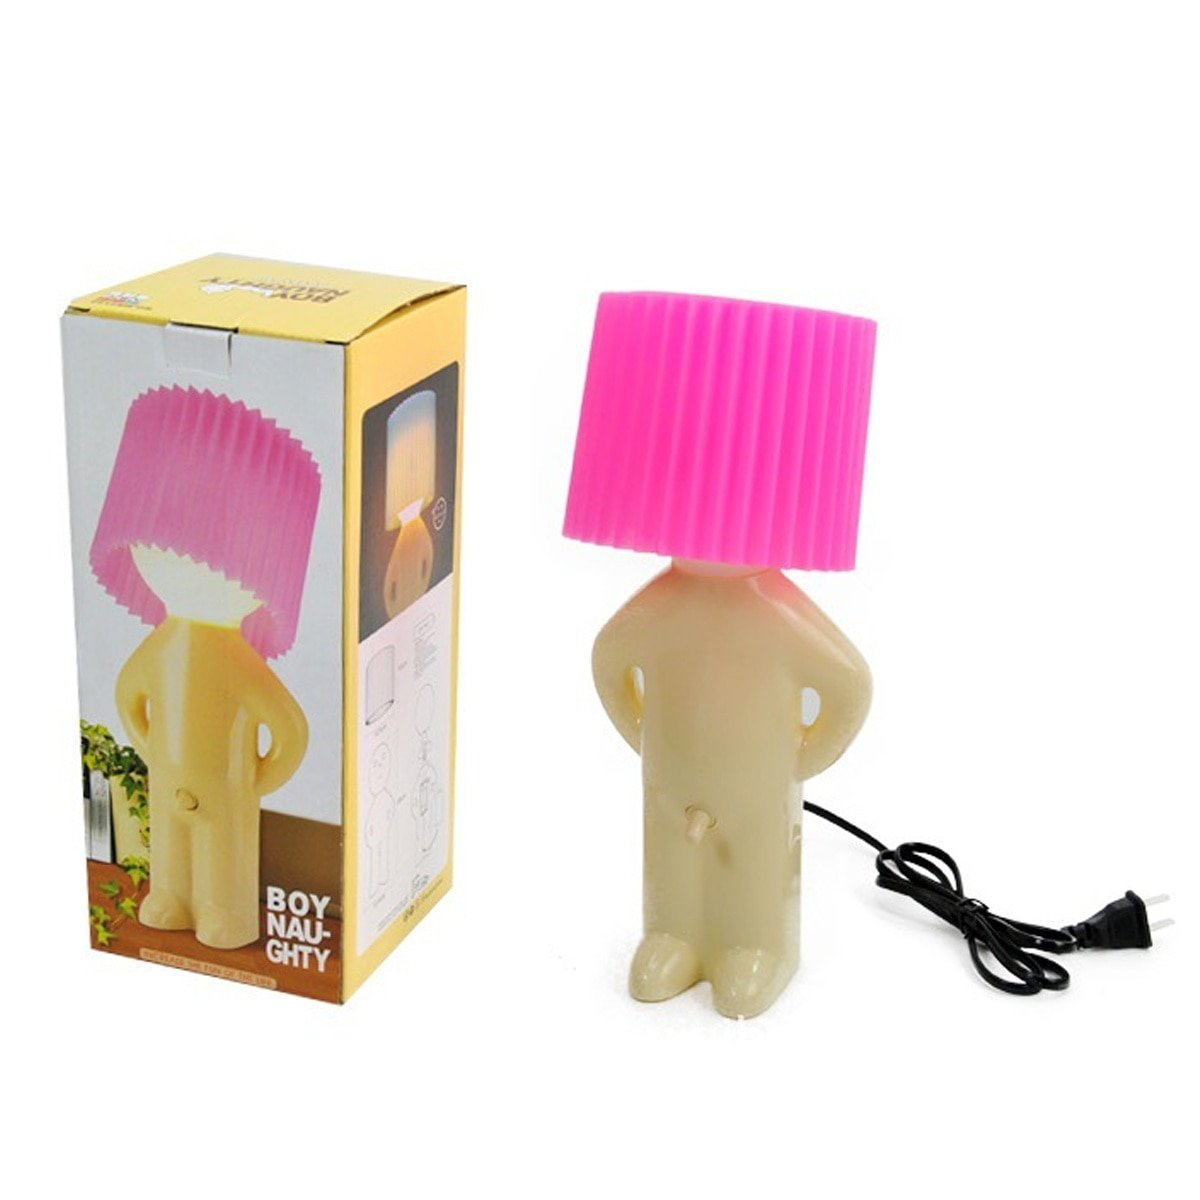 Naughty Boy Mr.P A Little Shy Man Creative Table Lamp Small Night Lights for Home Decoration Birthday Gift Halloween Christmas